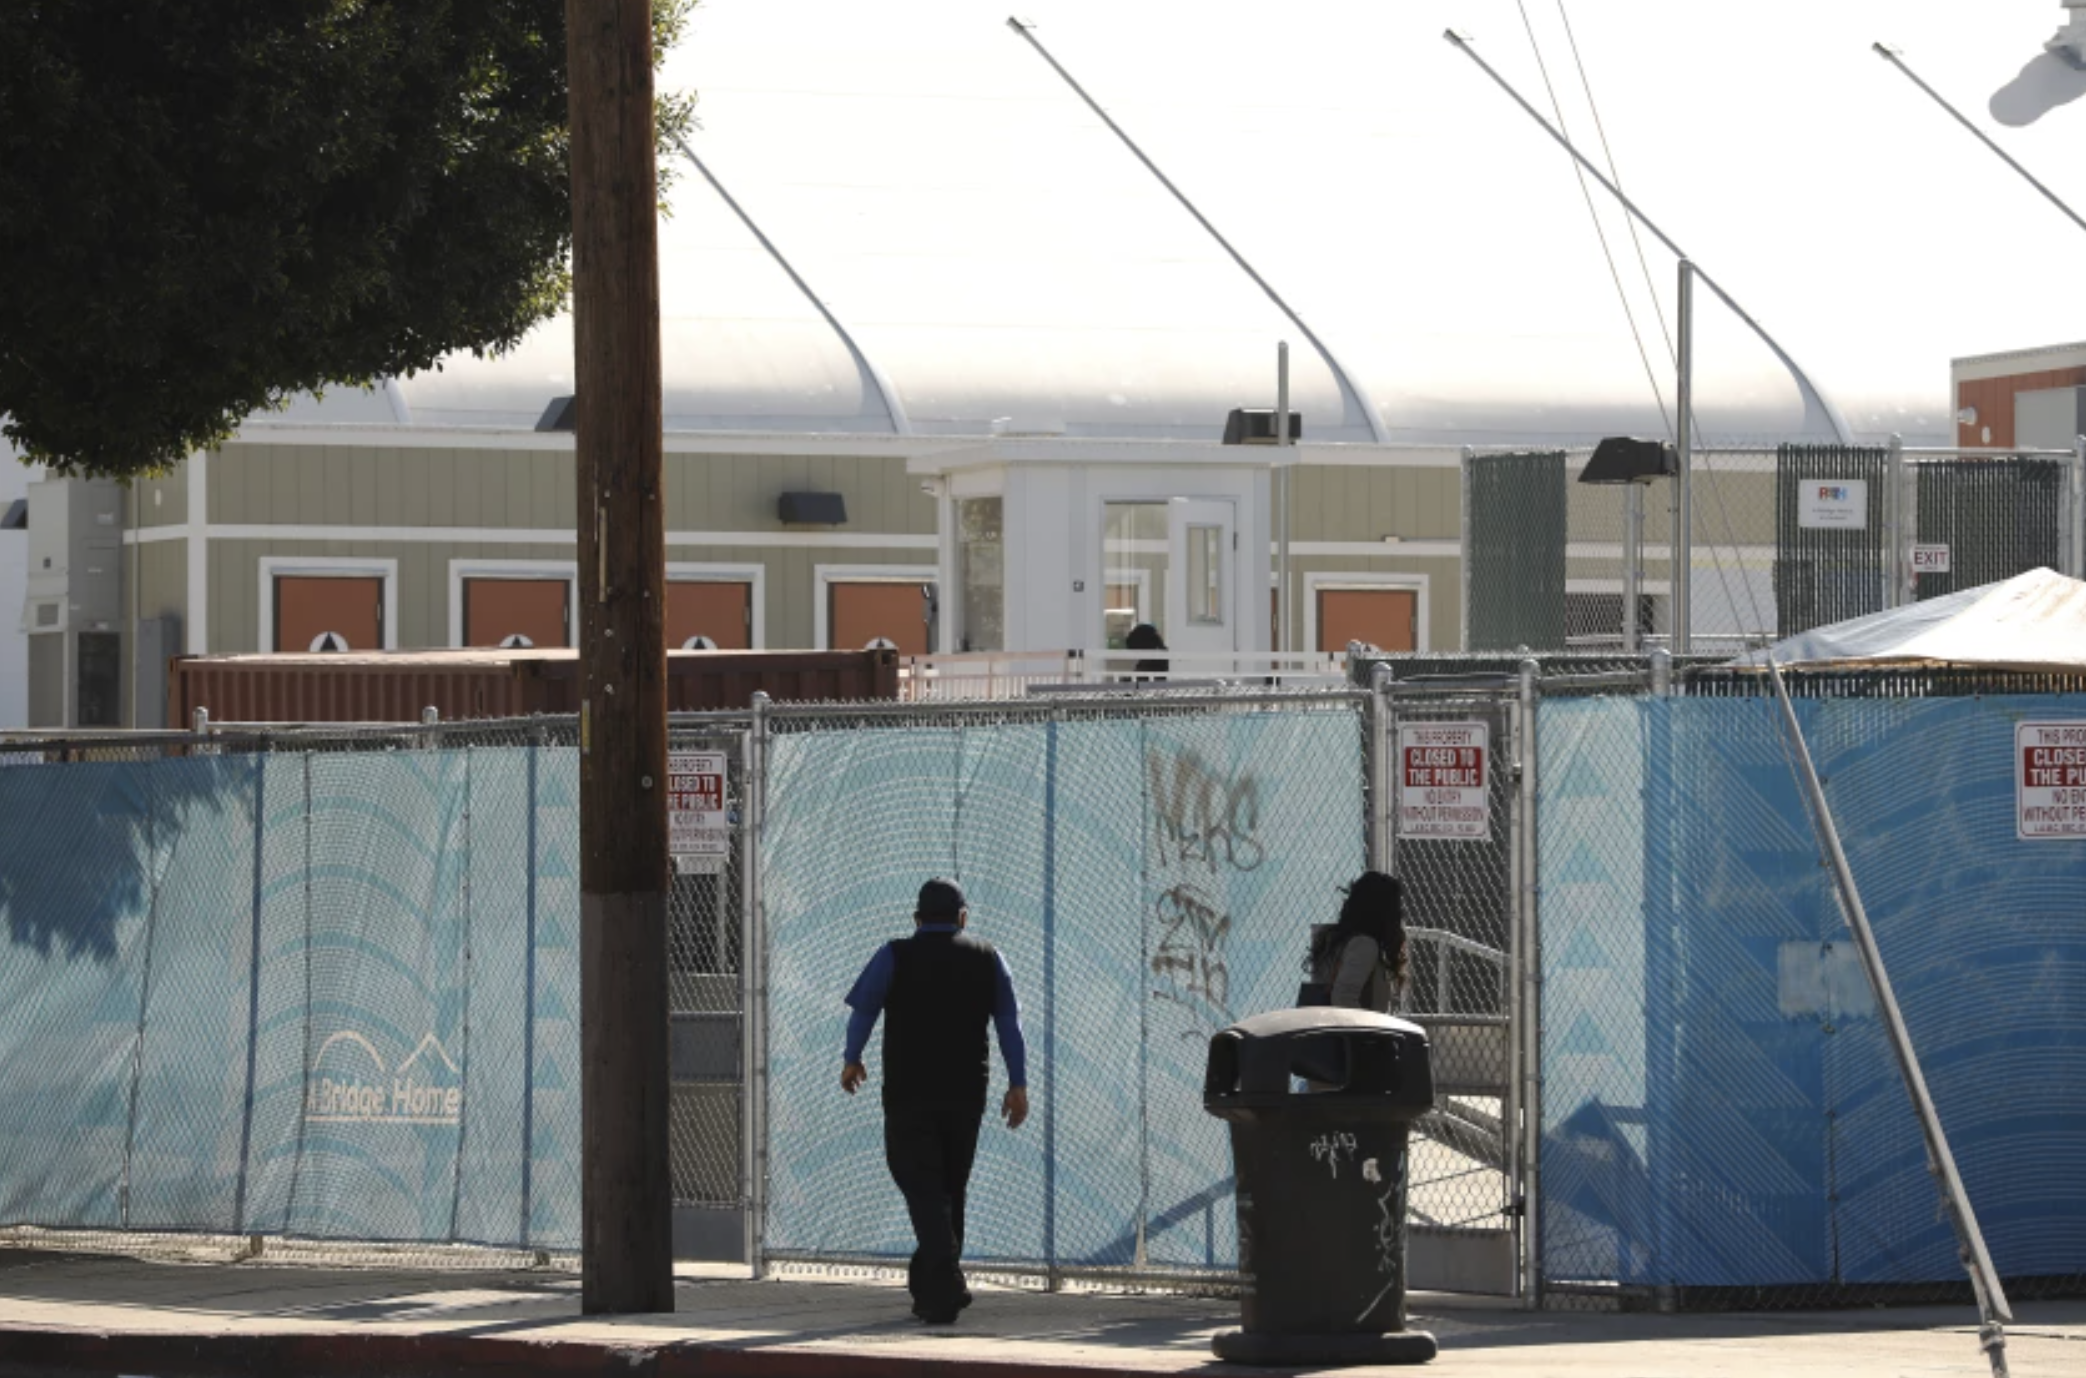 The A Bridge Home Shelter located at Main Street and Sunset Avenue in Venice.(Al Seib/Los Angeles Times)